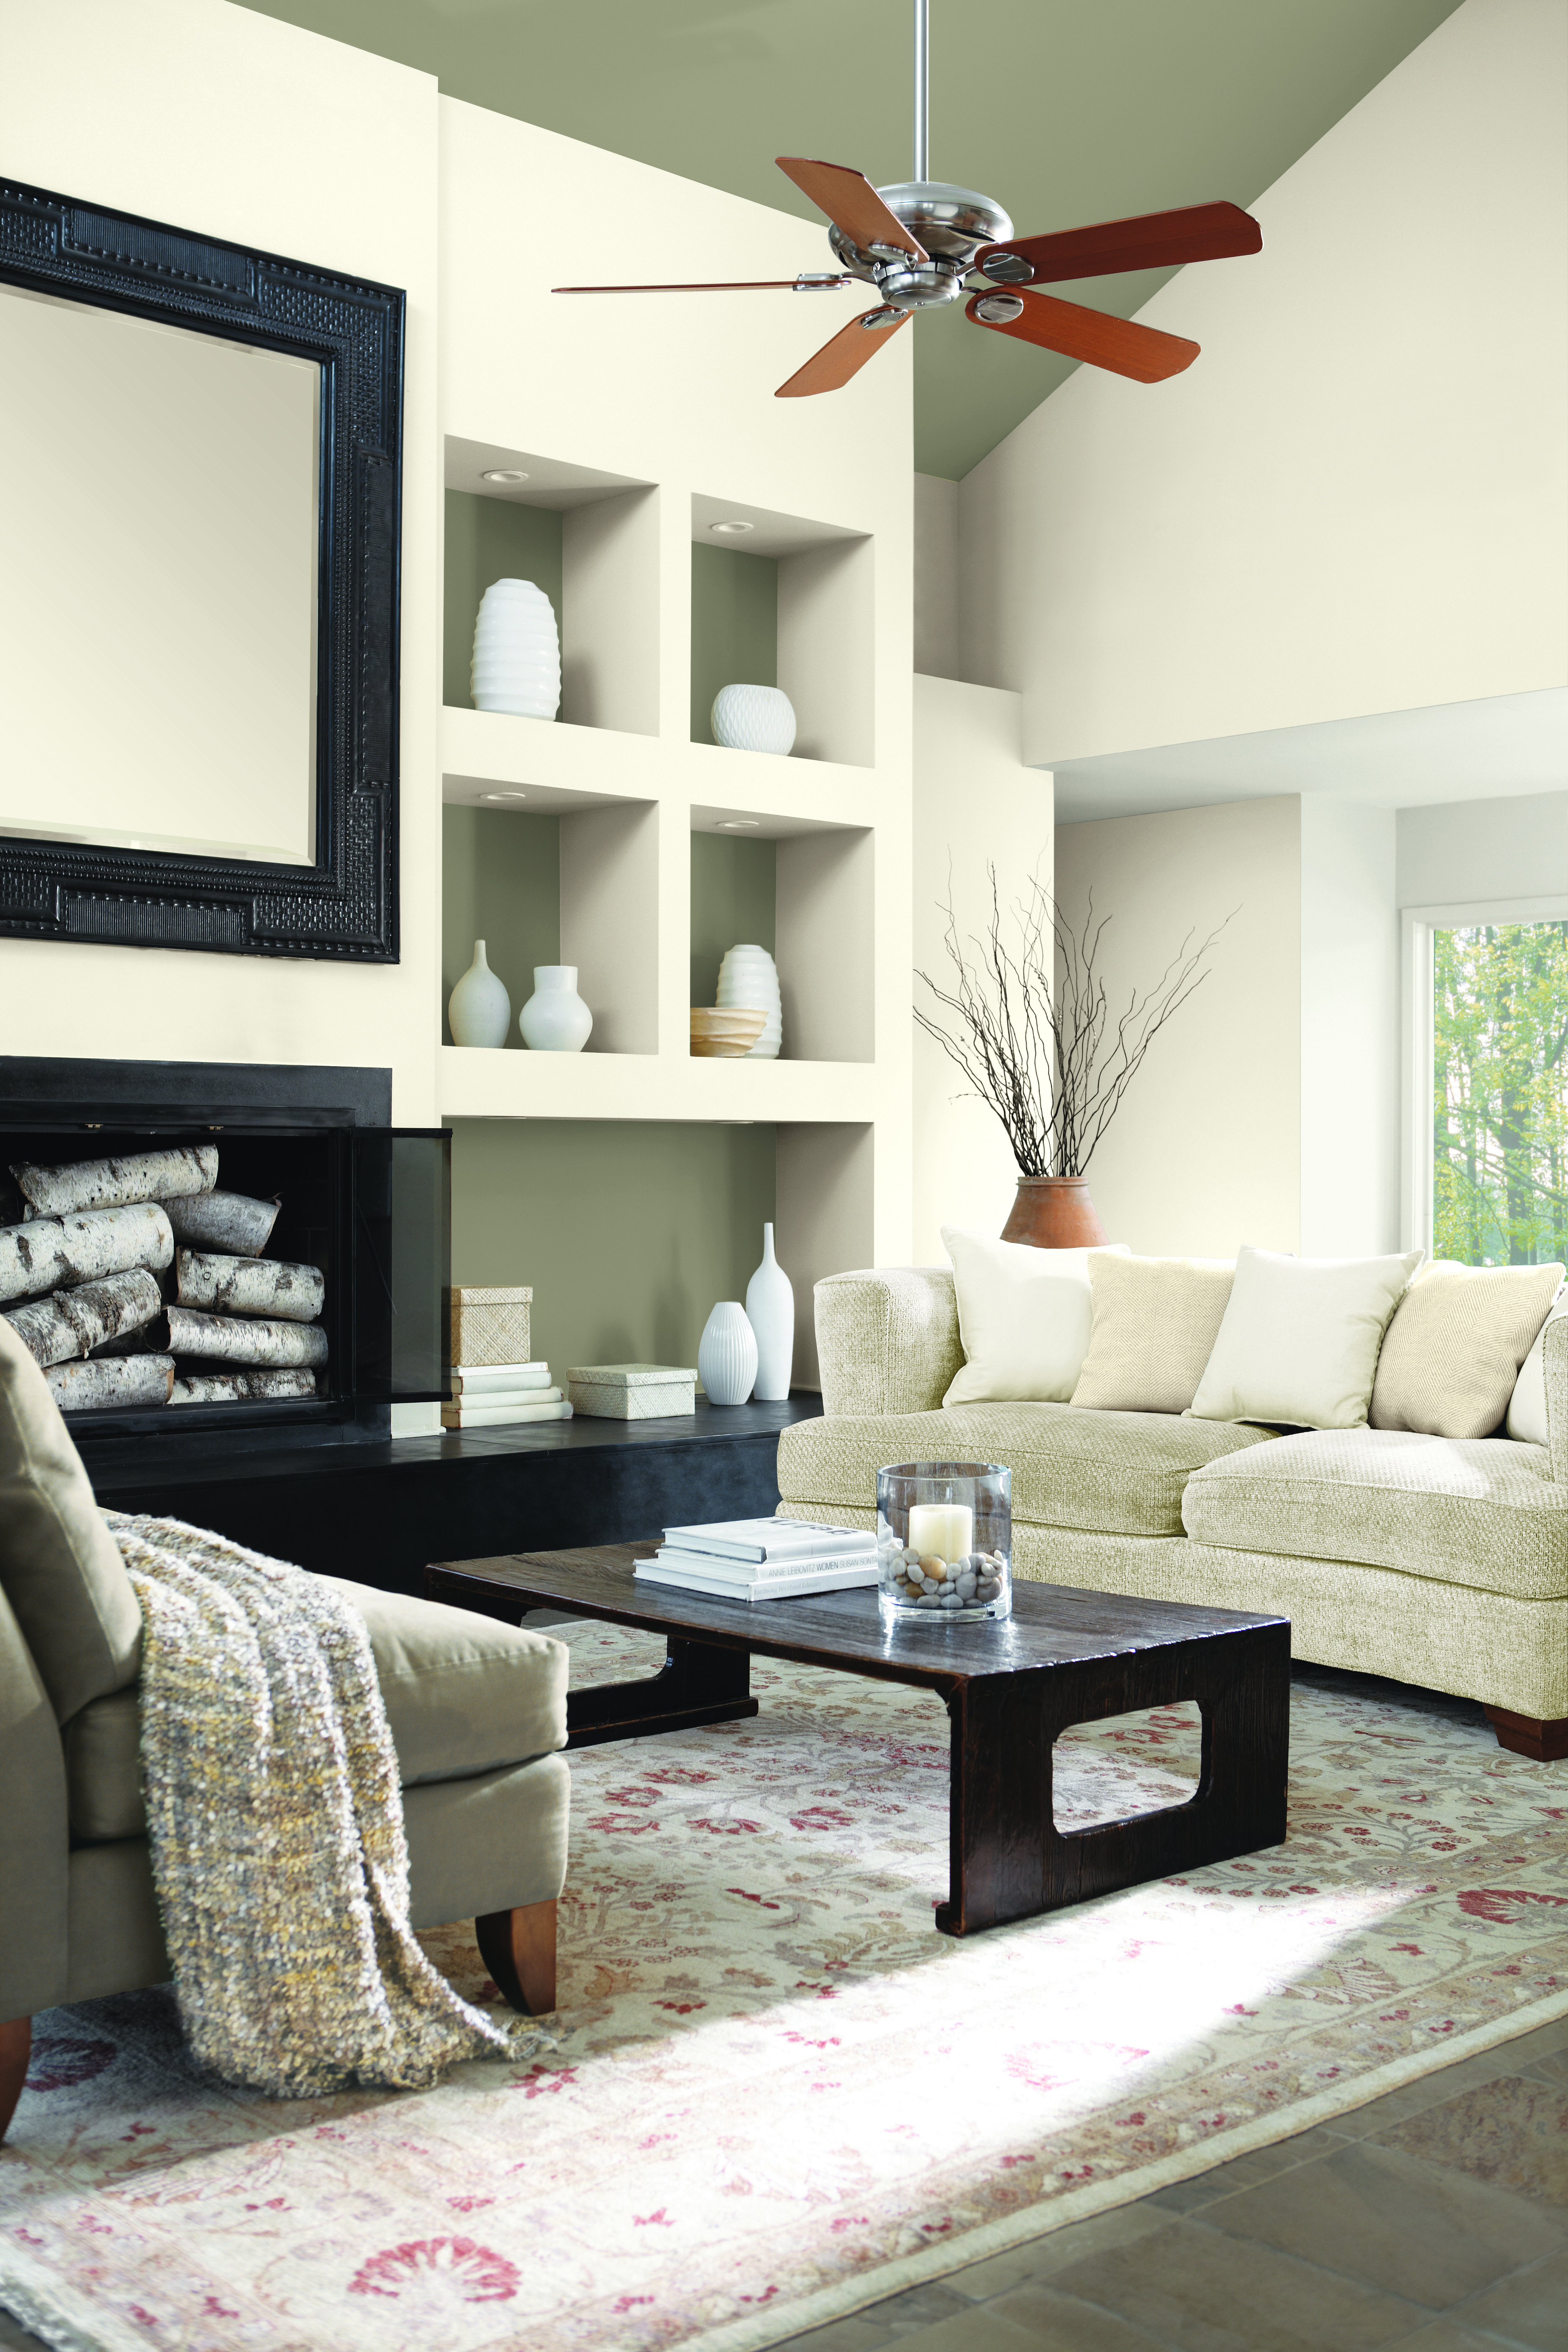 30 2017 Glidden Paint Today Announced Cuccino White 45yy 74 073 As Its 2016 Color Of The Year A Soft That Offers Silence And Creates